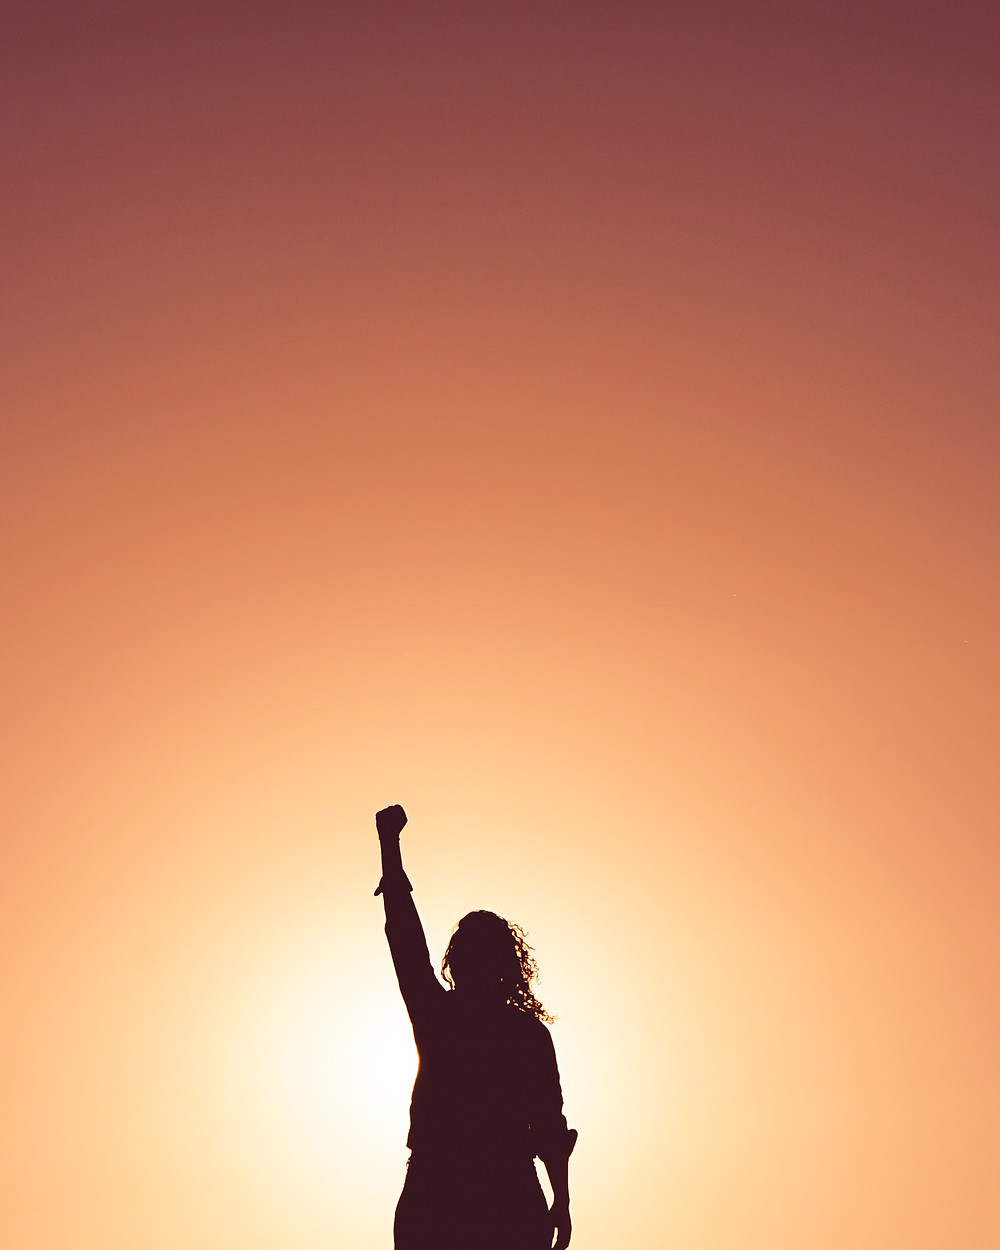 Silhouette of woman with fist raised facing sunset